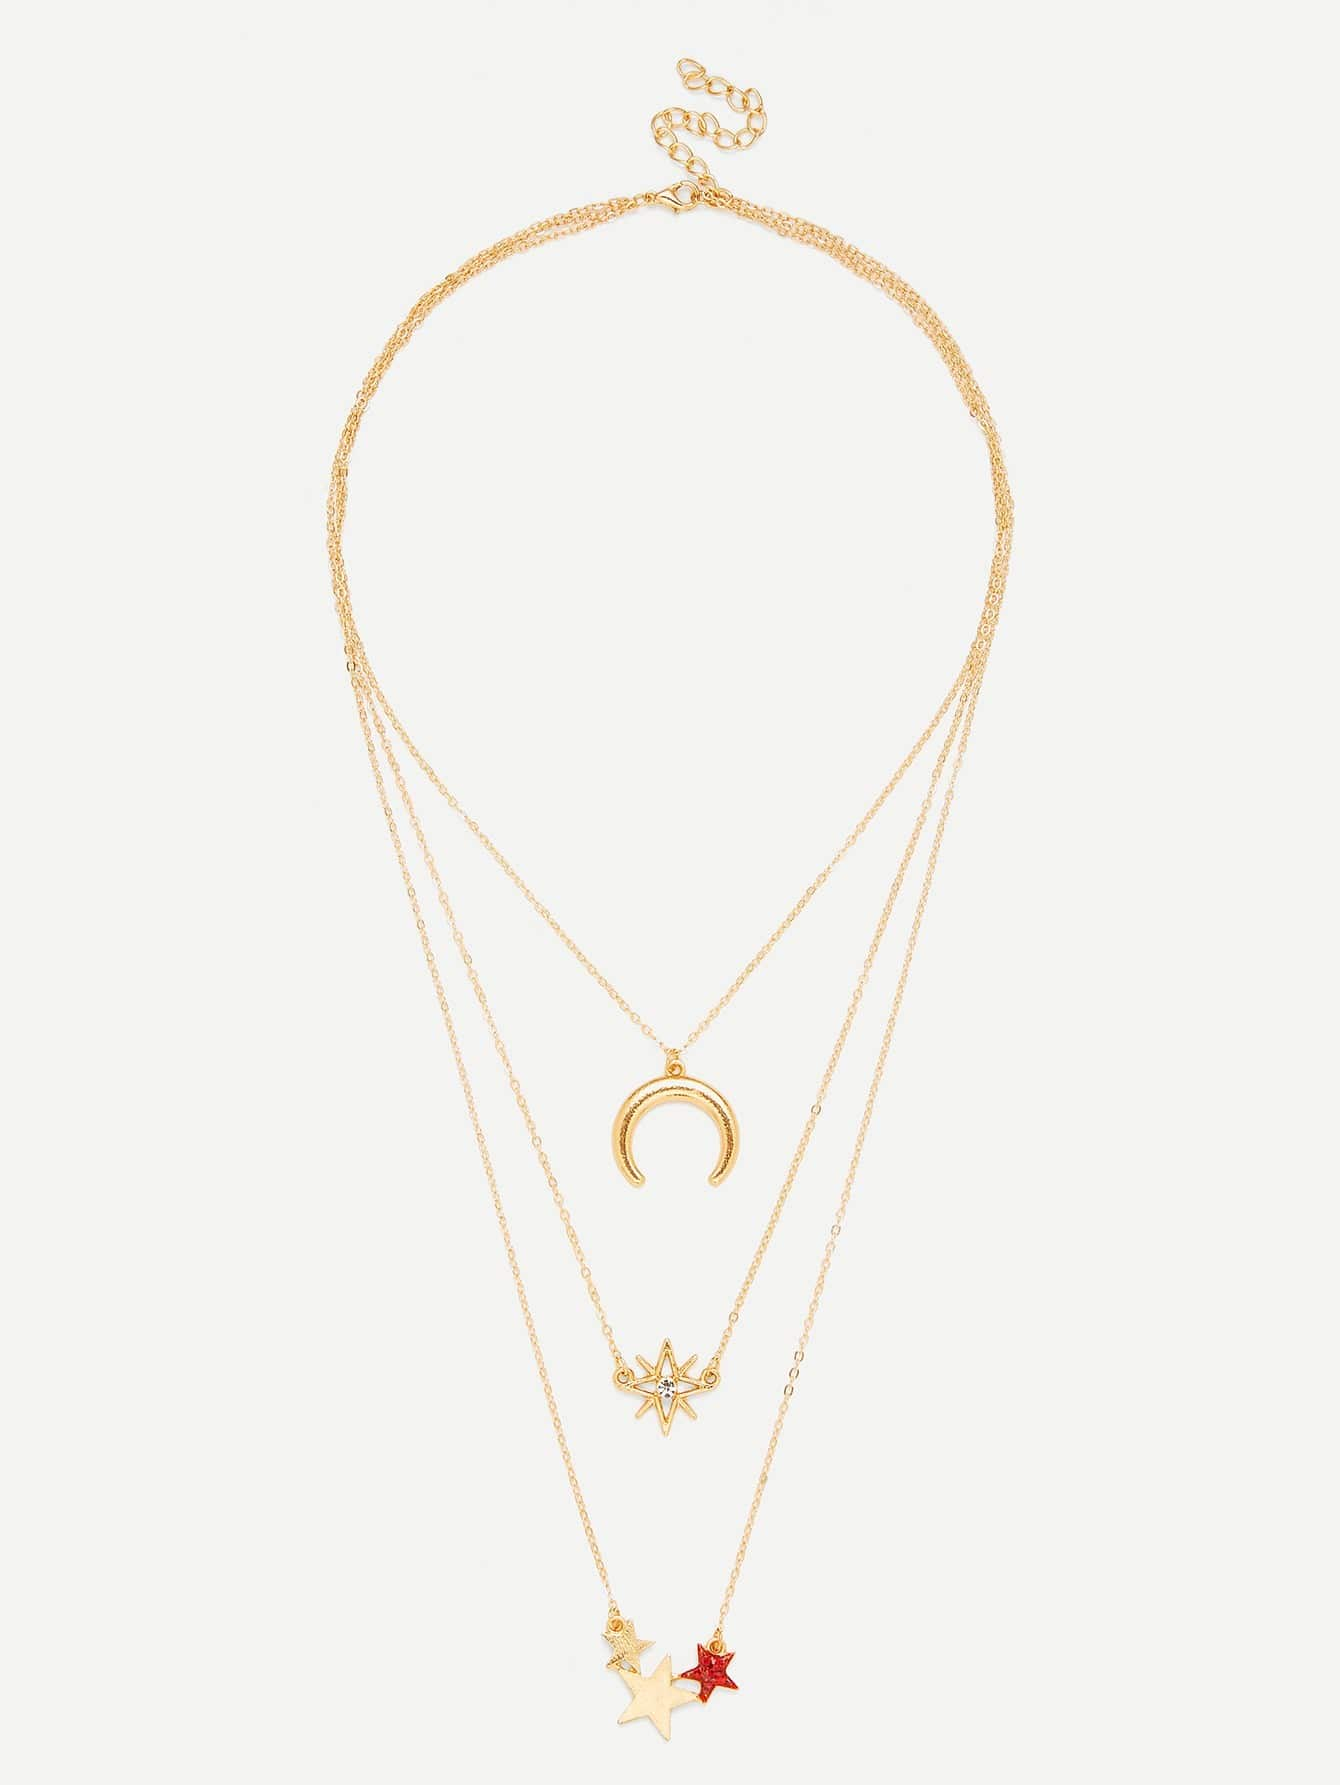 Star & Moon Pendant Layered Chain Necklace